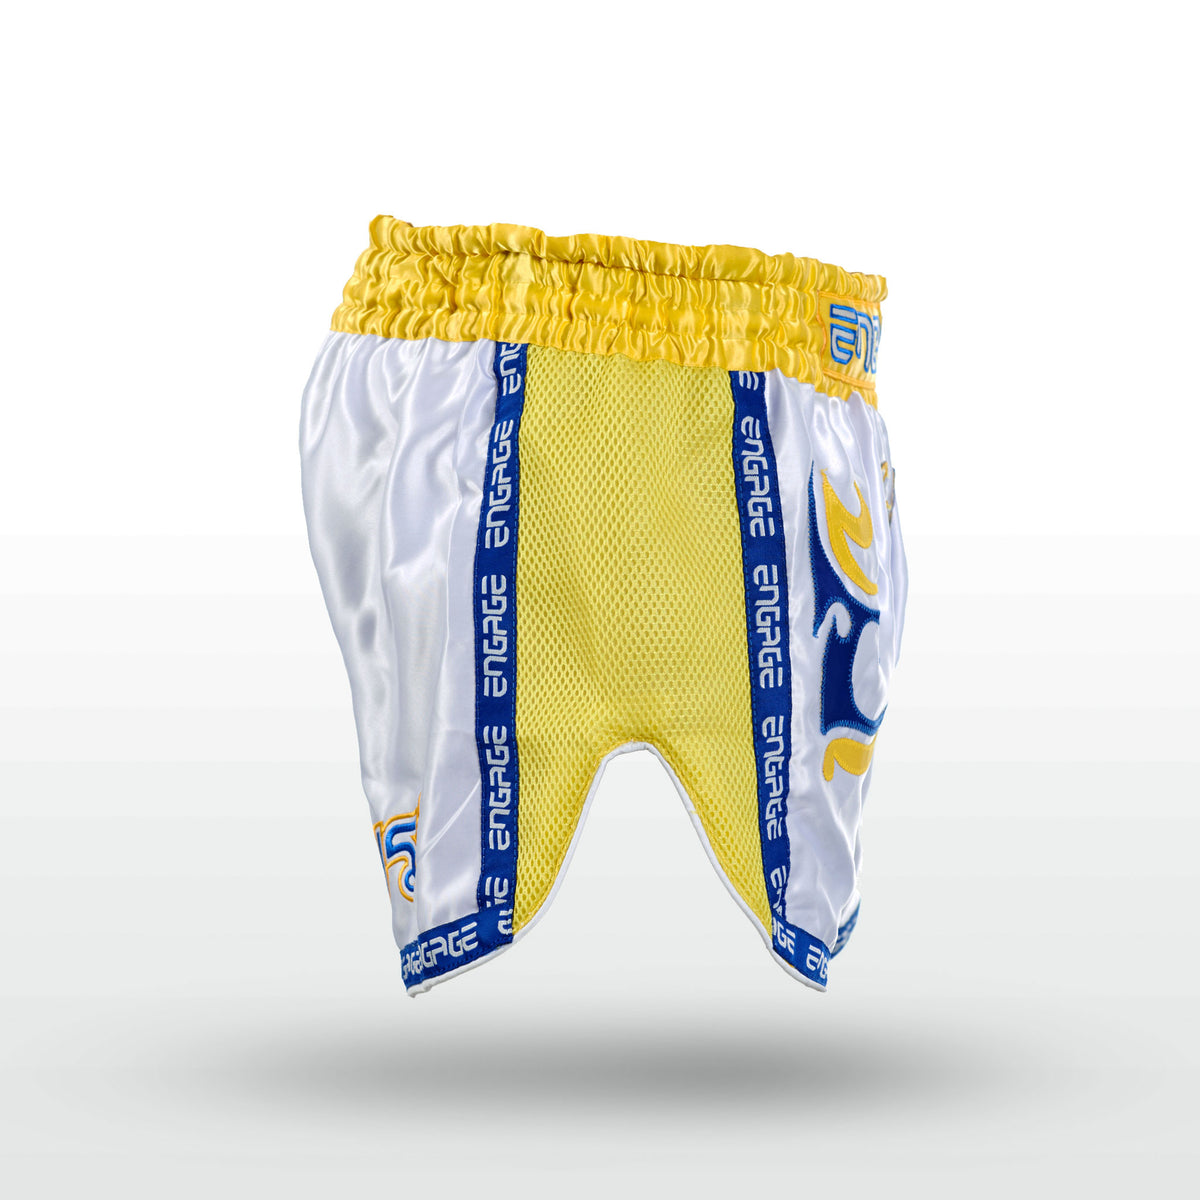 Engage Muay Thai Short Tribal Coterie - Yellow Muay Thai Shorts Engage MMA Online Fight Store for Apparel, Fightwear and Fight Gear Equipment